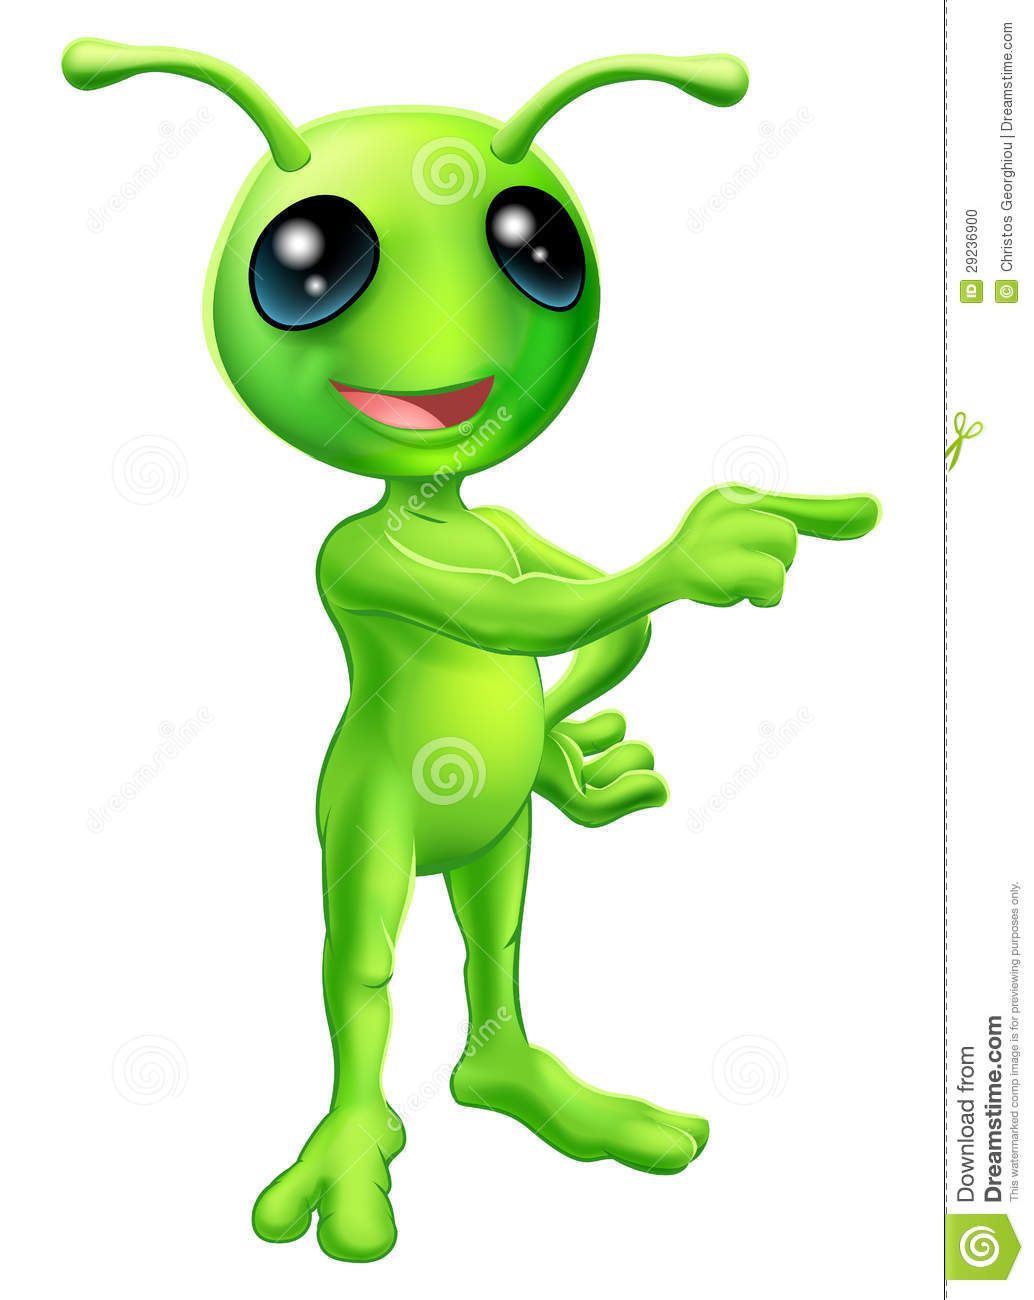 ... of a cute green cartoon alien pointing a finger and showing something